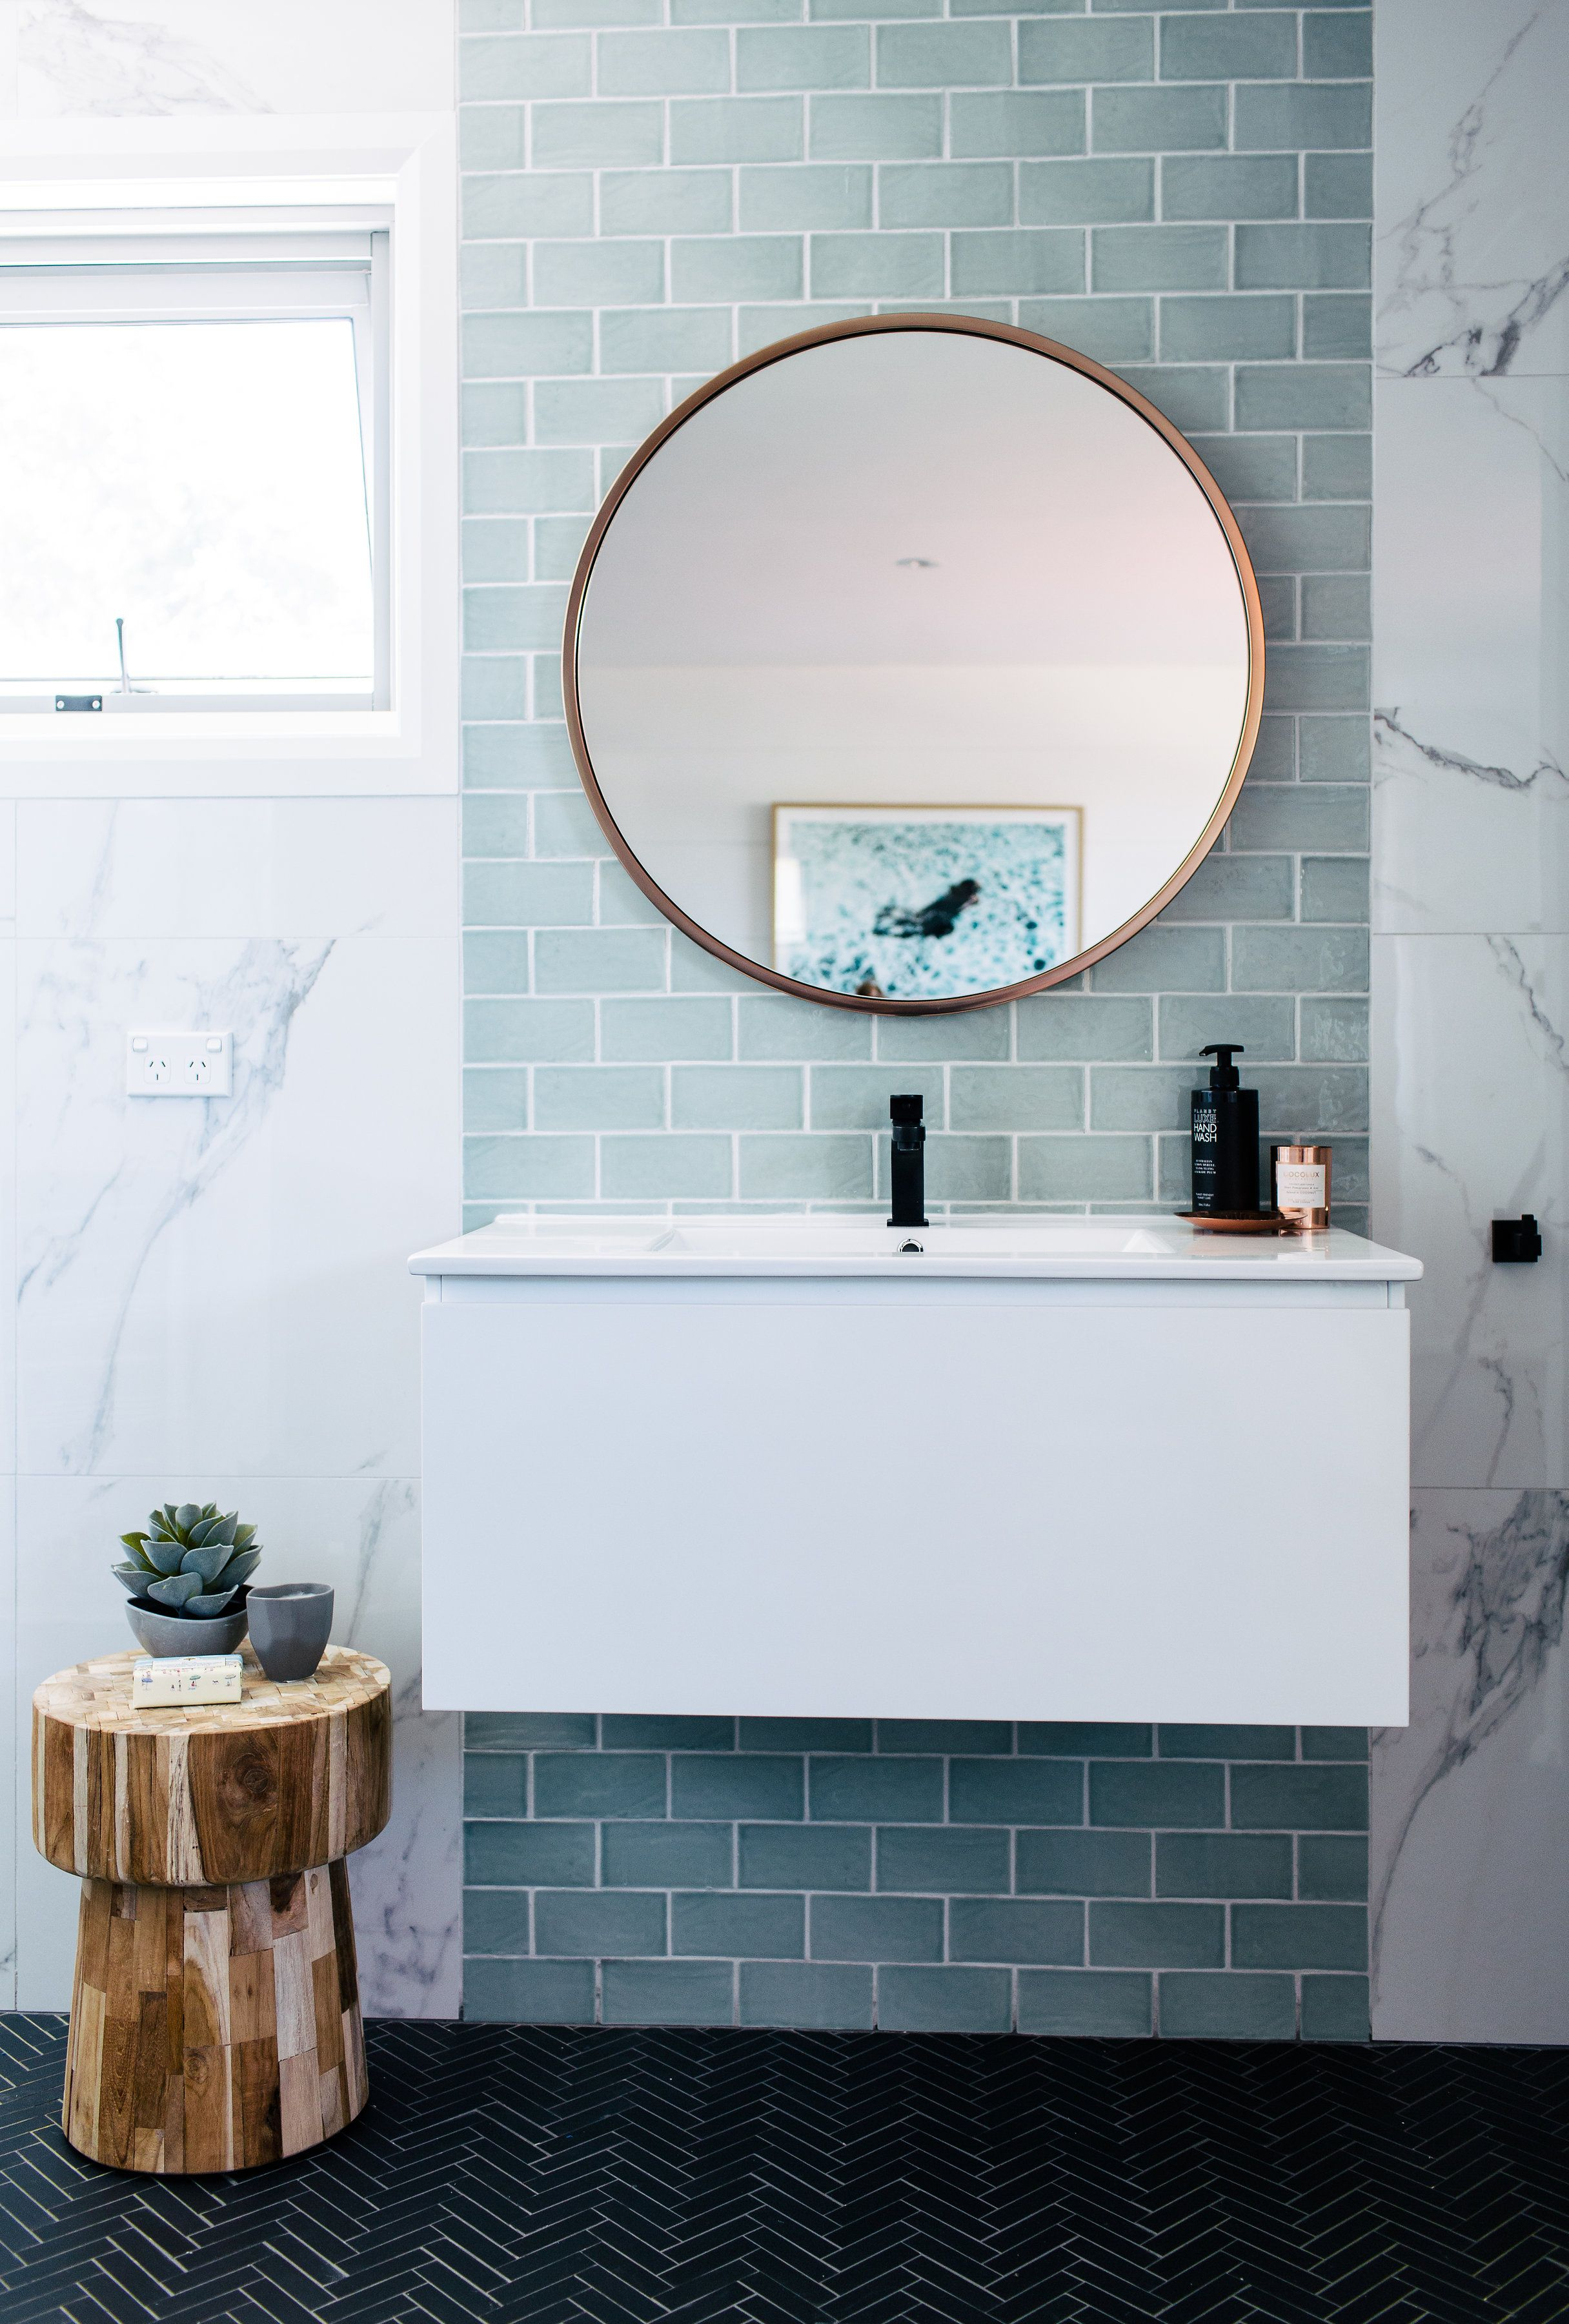 Projects | Bathroom | Pinterest | Bathroom, House And Regarding Hussain Tile Accent Wall Mirrors (Image 14 of 20)